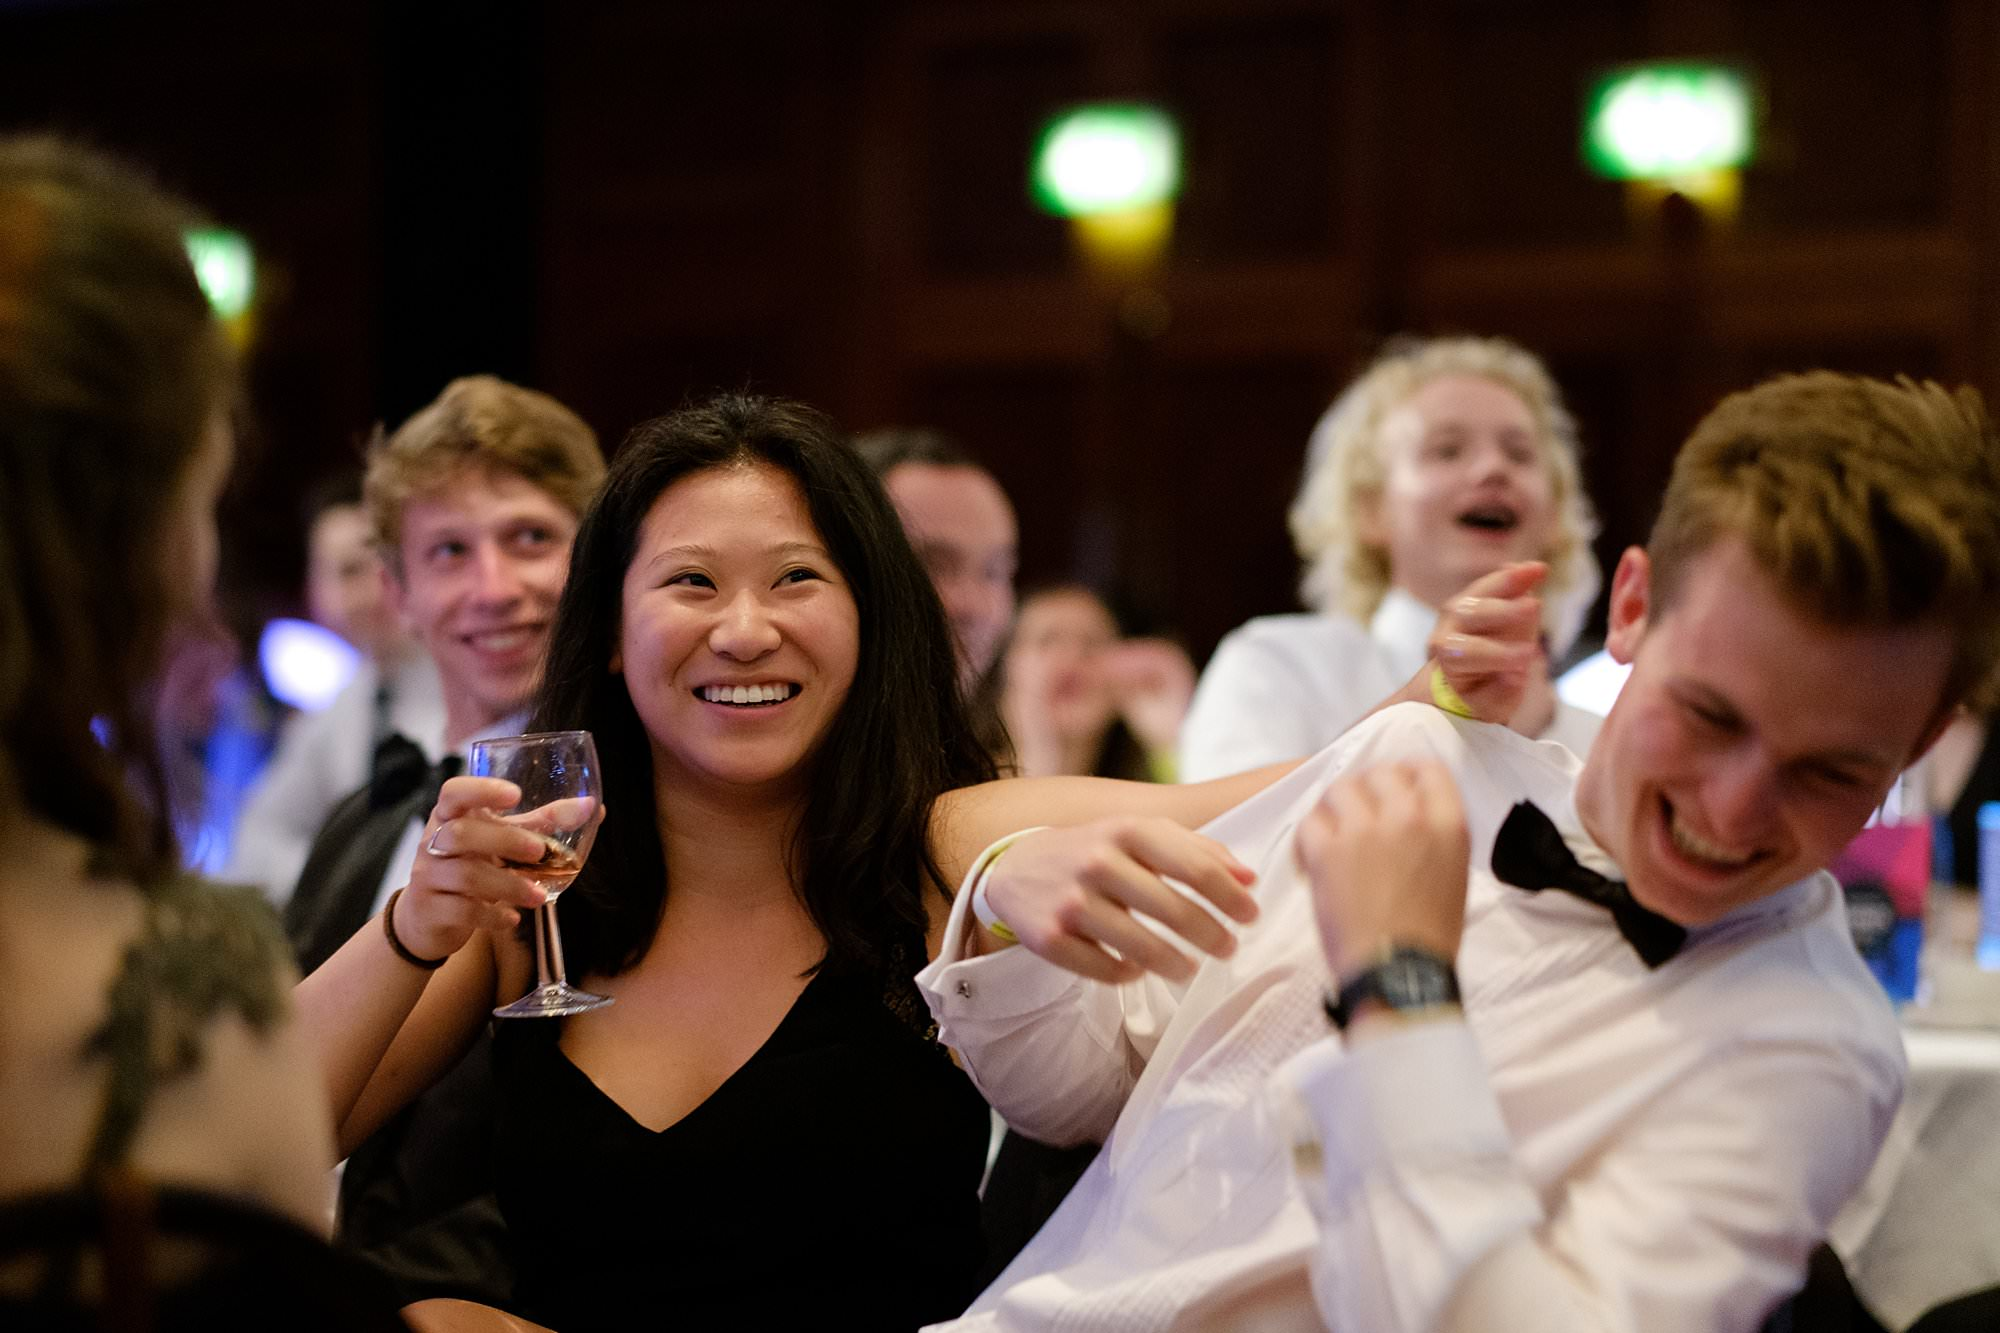 london event photographer ICL copthorne tara 019 - Corporate: Imperial College Sports Awards